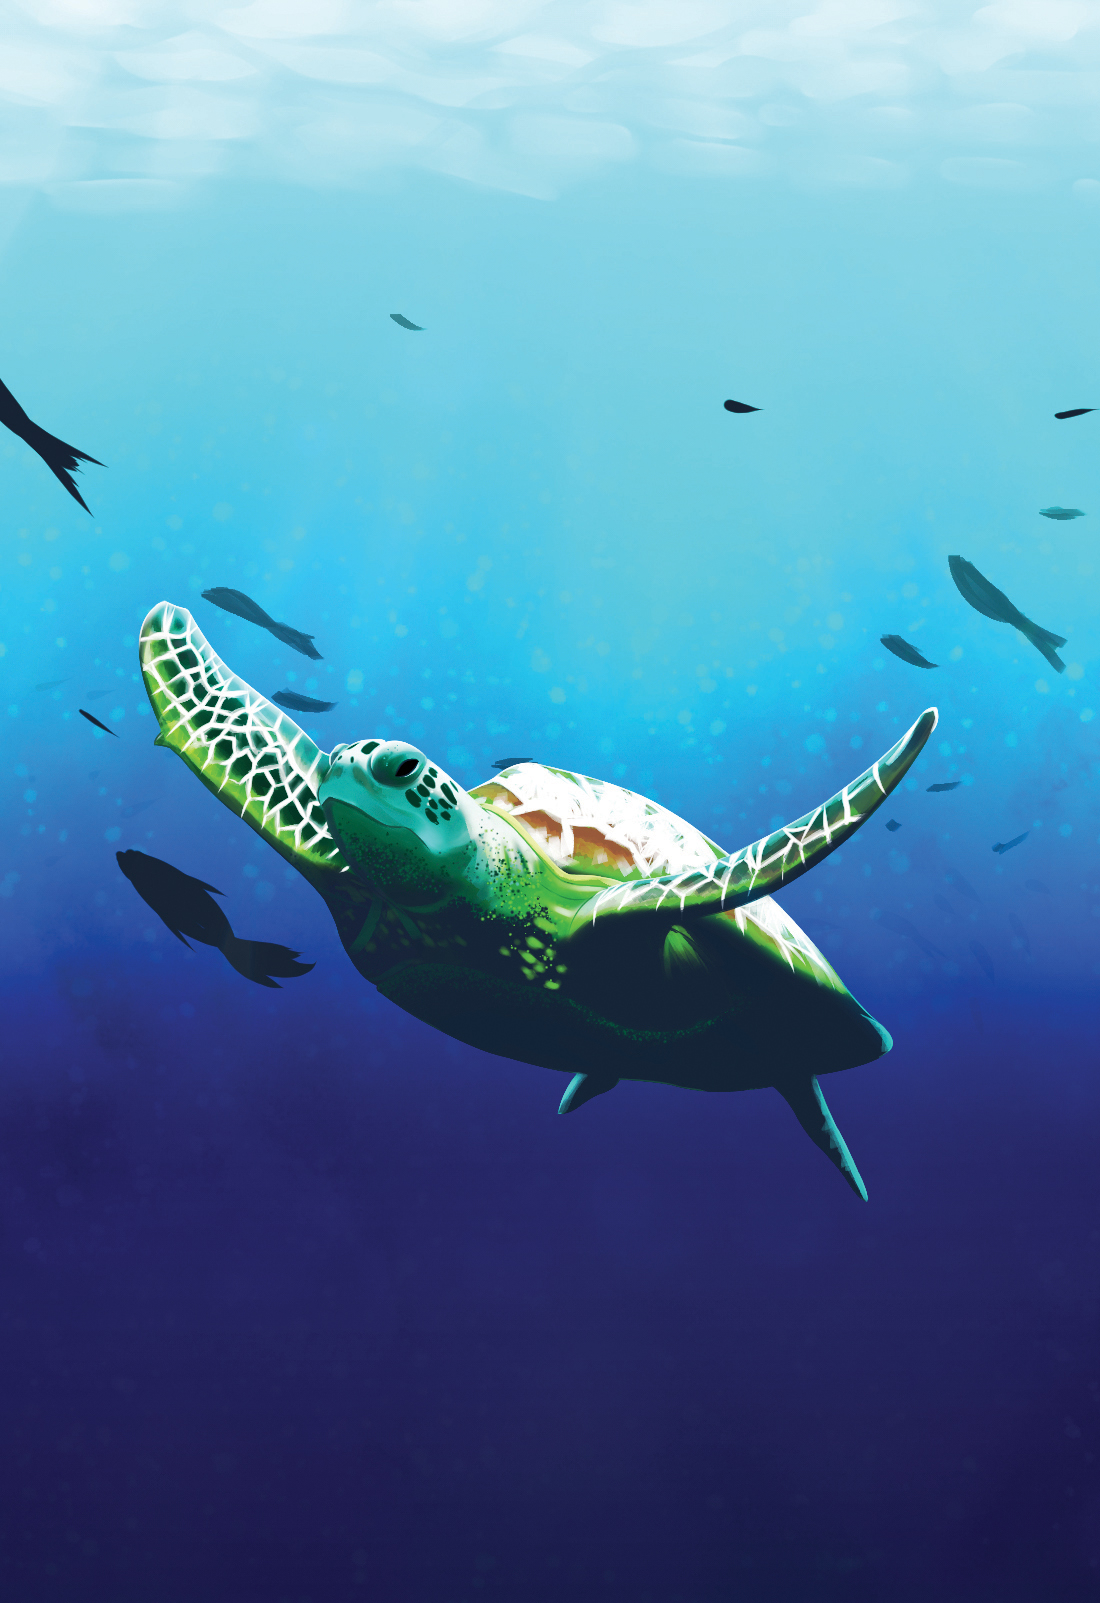 Untitled Game Turtle Illustration